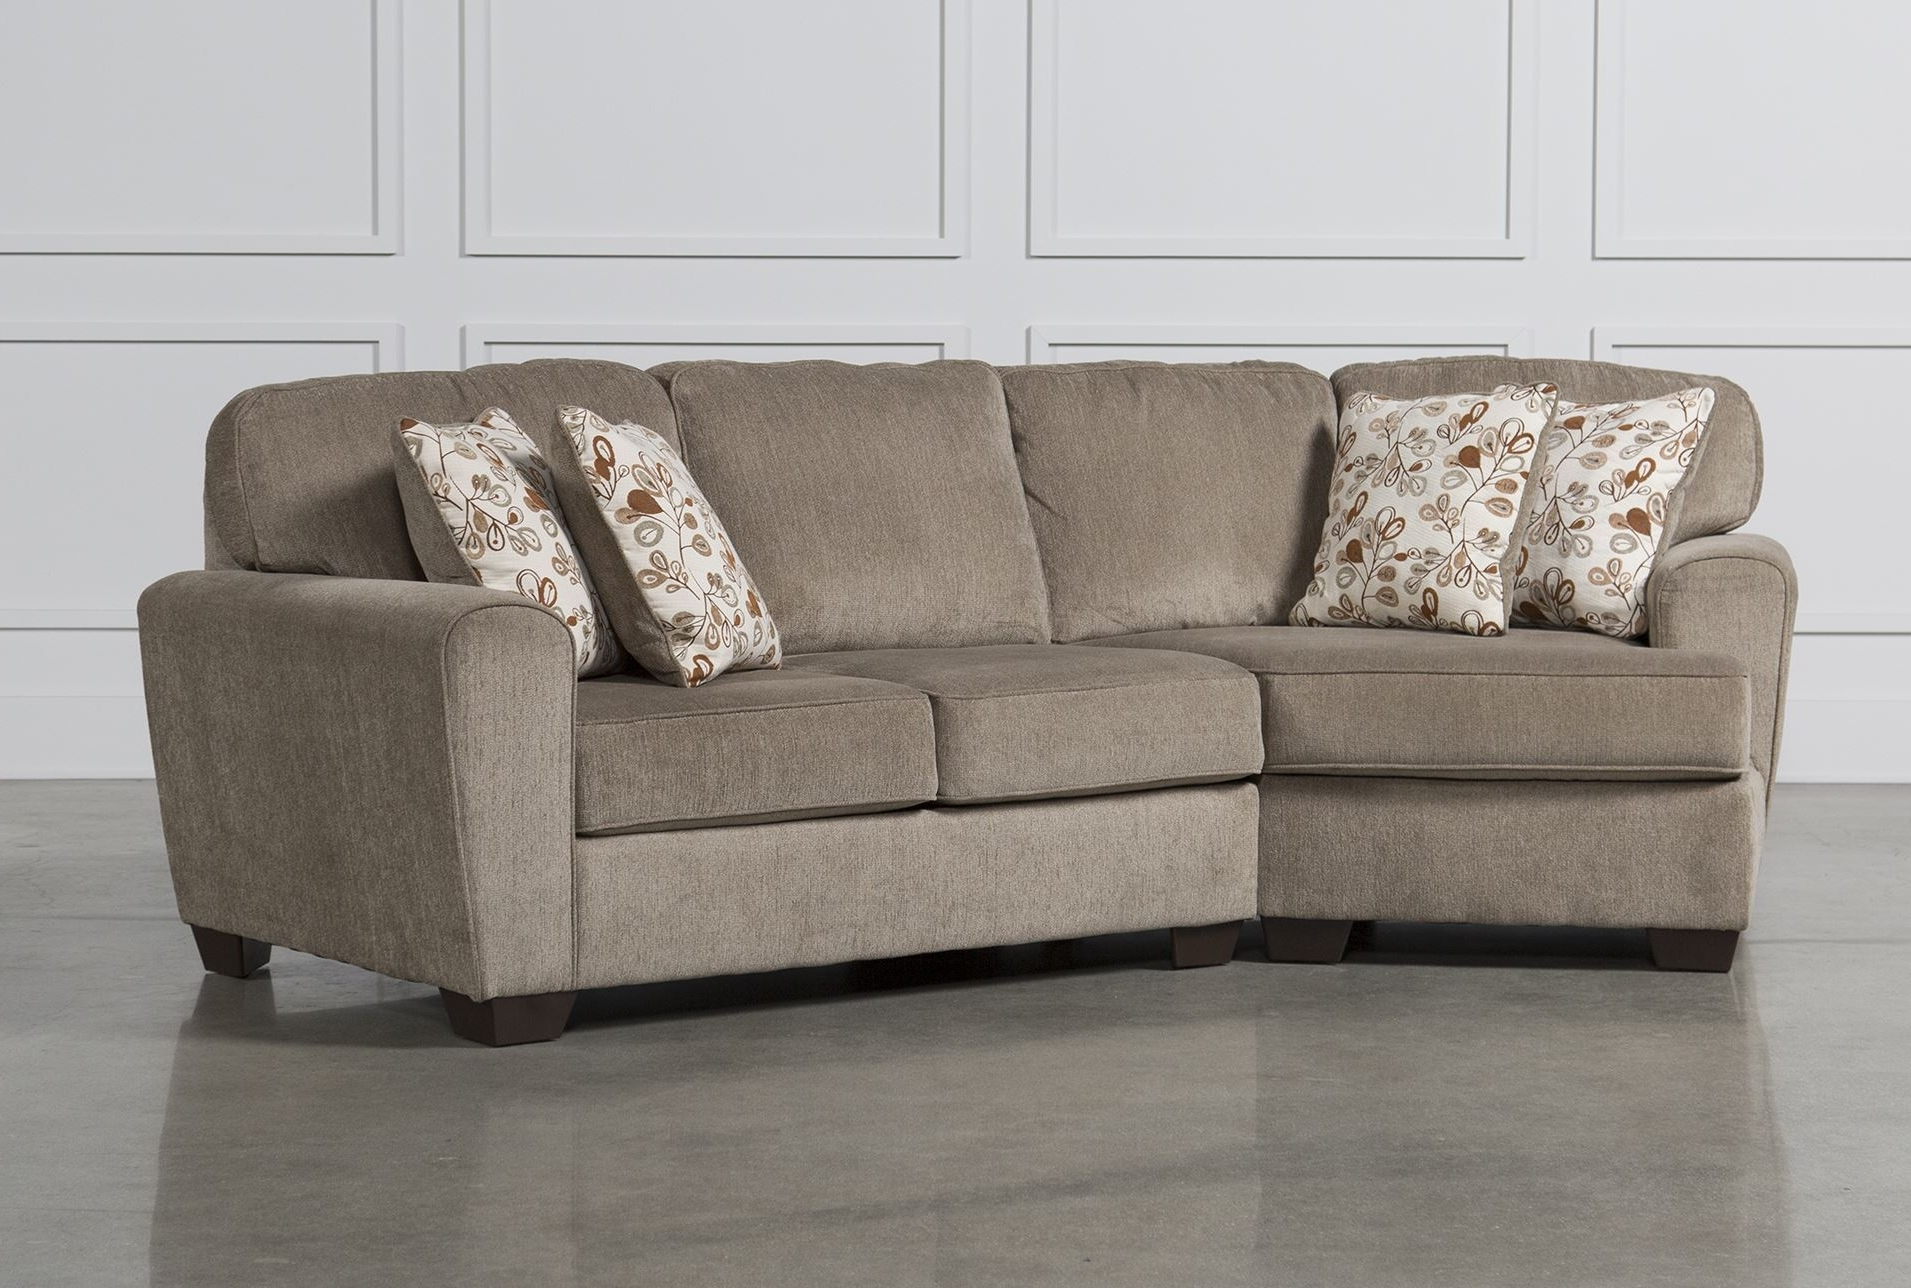 Cuddler Chaises With Newest Latest Trend Of Sectional Sofa With Cuddler Chaise 81 In Eco (View 3 of 15)